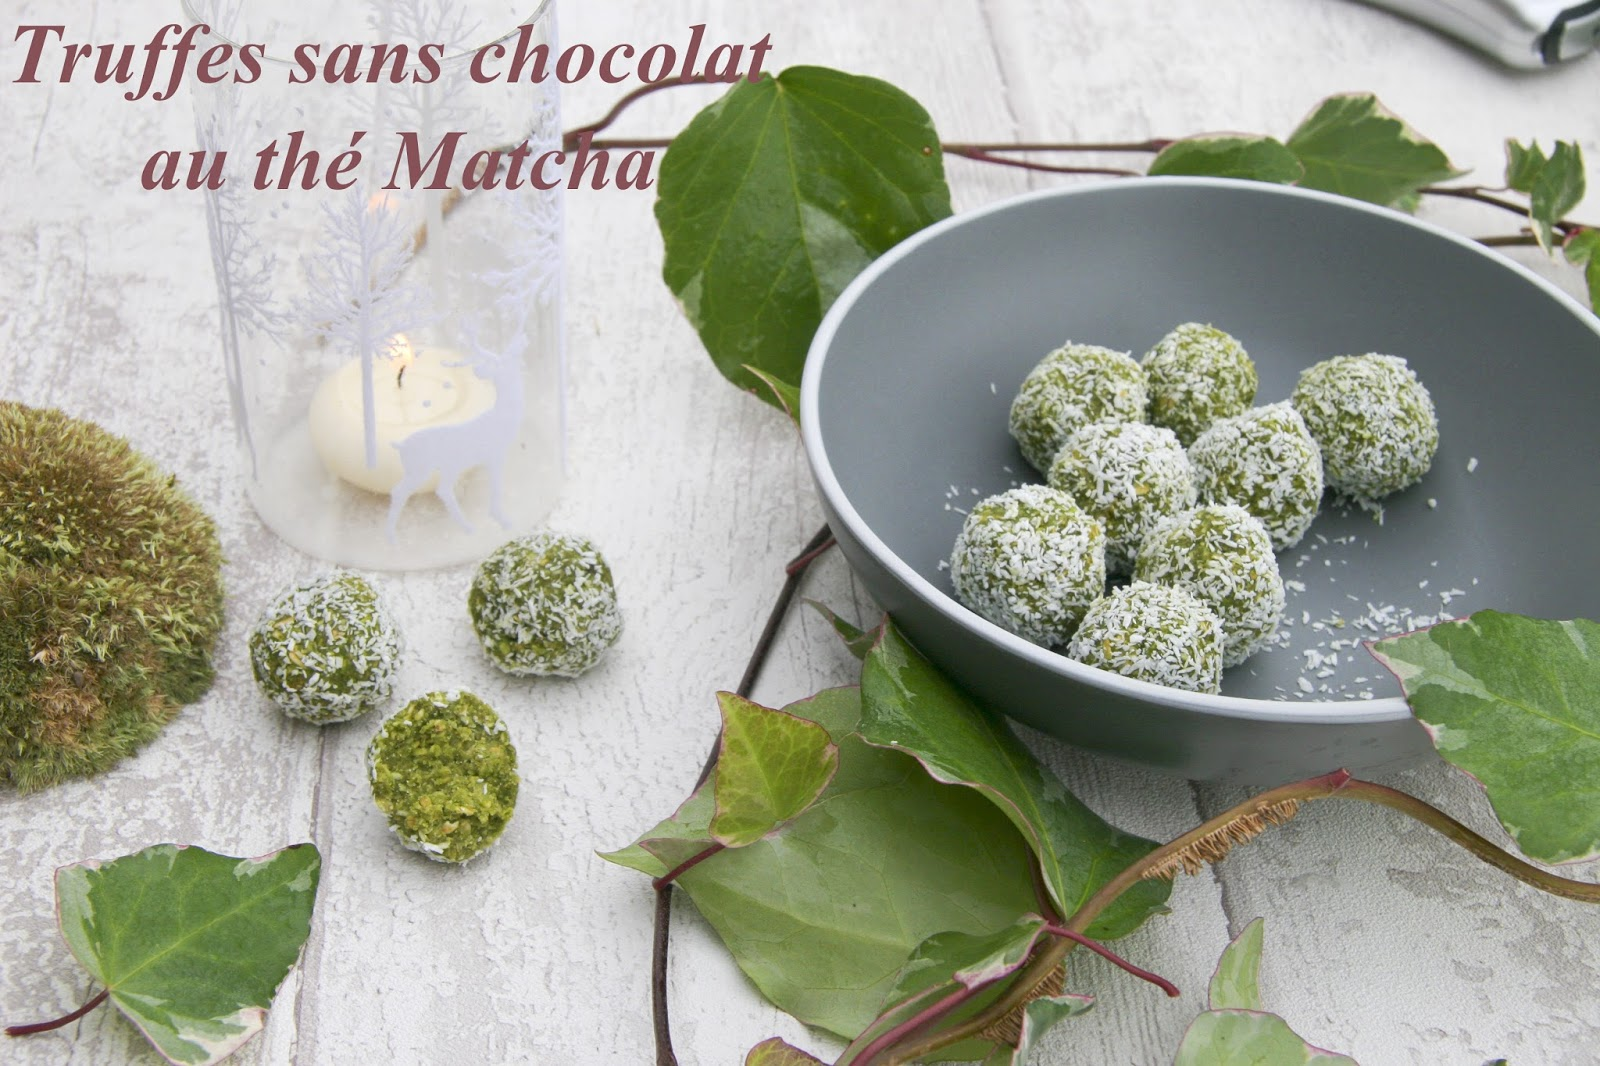 truffes sans chocolat au th matcha. Black Bedroom Furniture Sets. Home Design Ideas